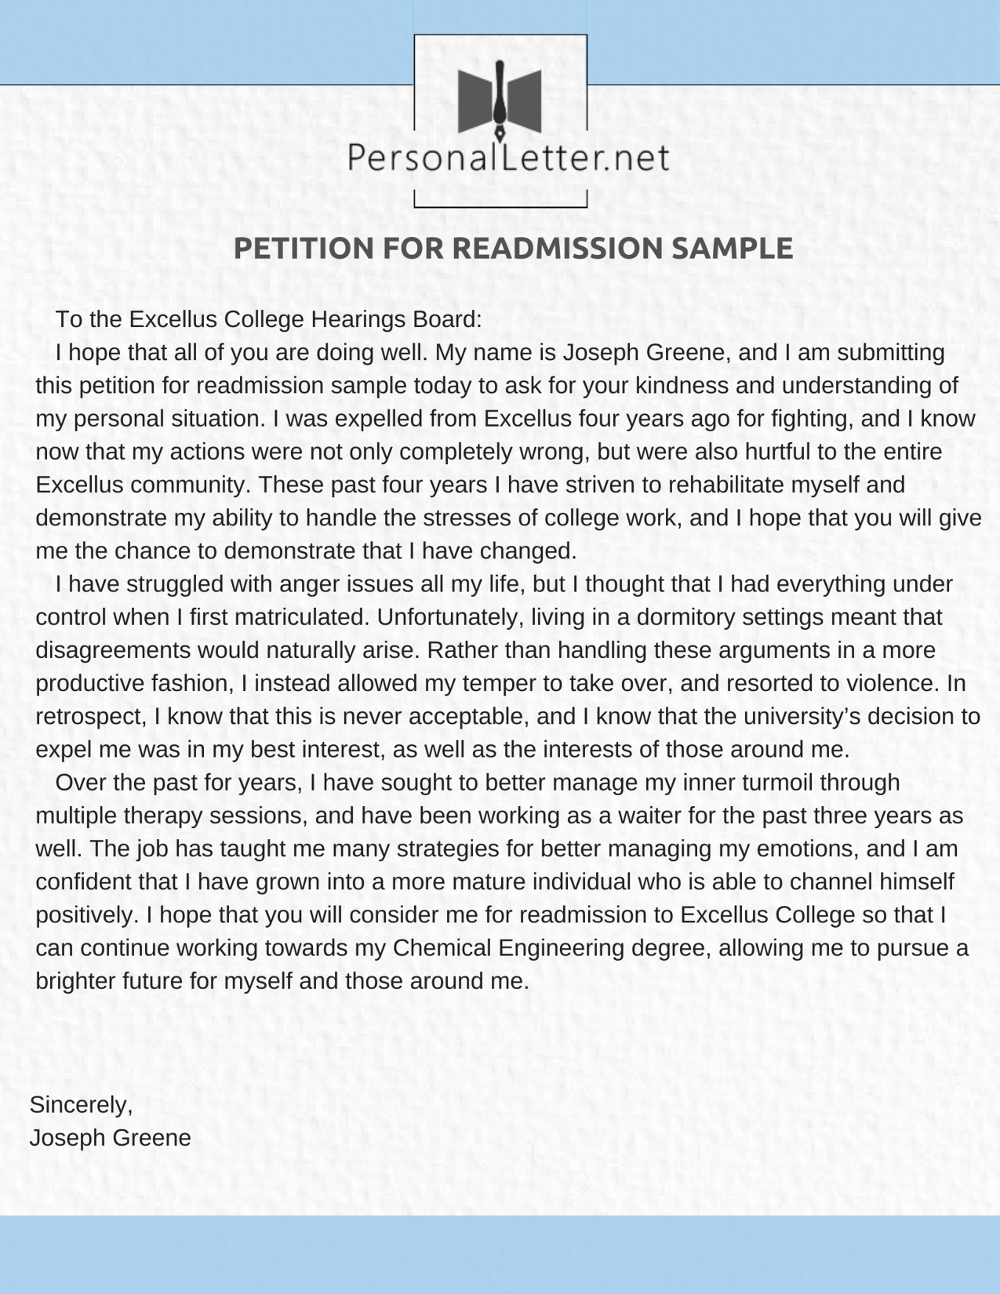 Sample Of Petition Letter Unique Petition for Readmission Sample Letter